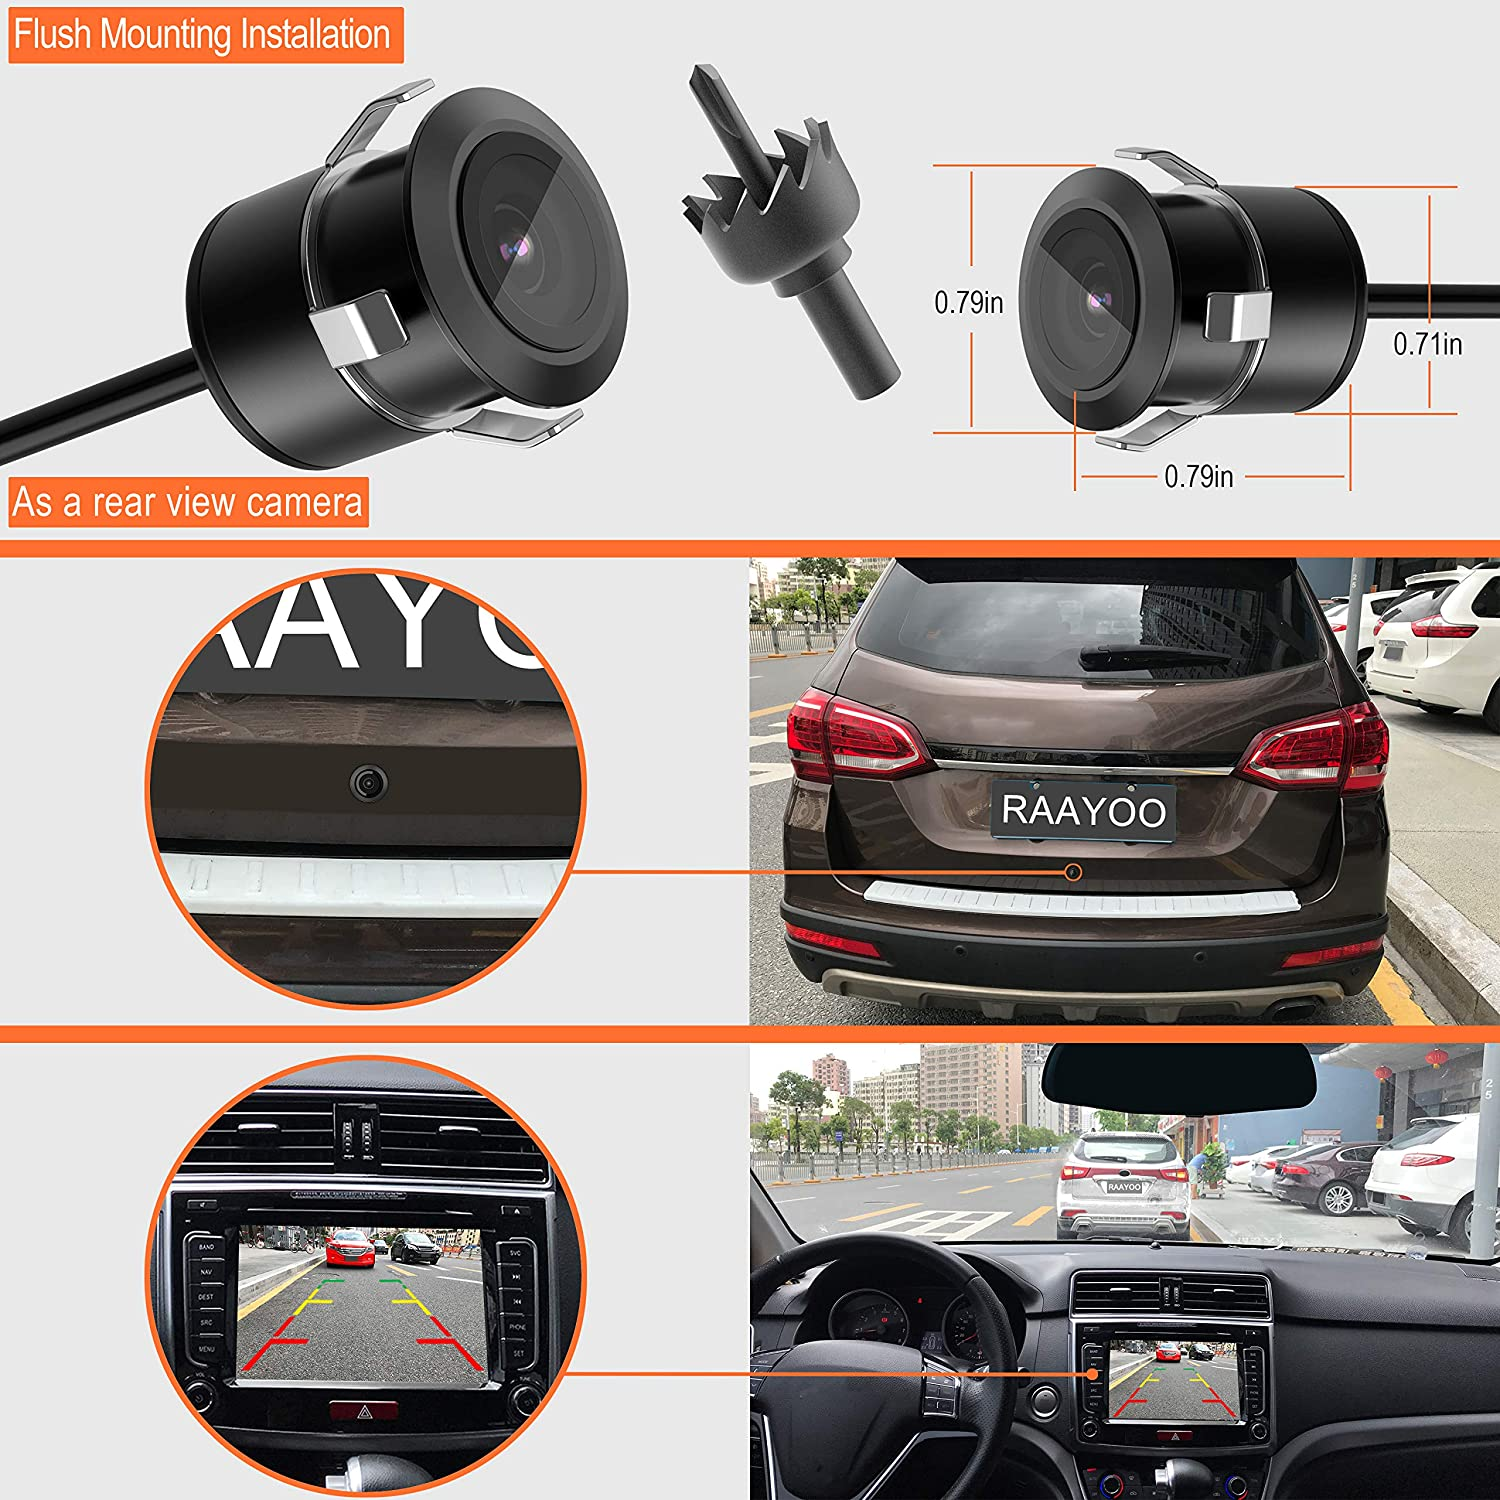 Reverse Backup Camera,RAAYOO L014 170 Degree Wide View Angle 3-in-1 Universal Car Front//Side//Rear View License Plate Camera,3 Installation Options,Removable Guildlines,mirror non-mirror image,12V only